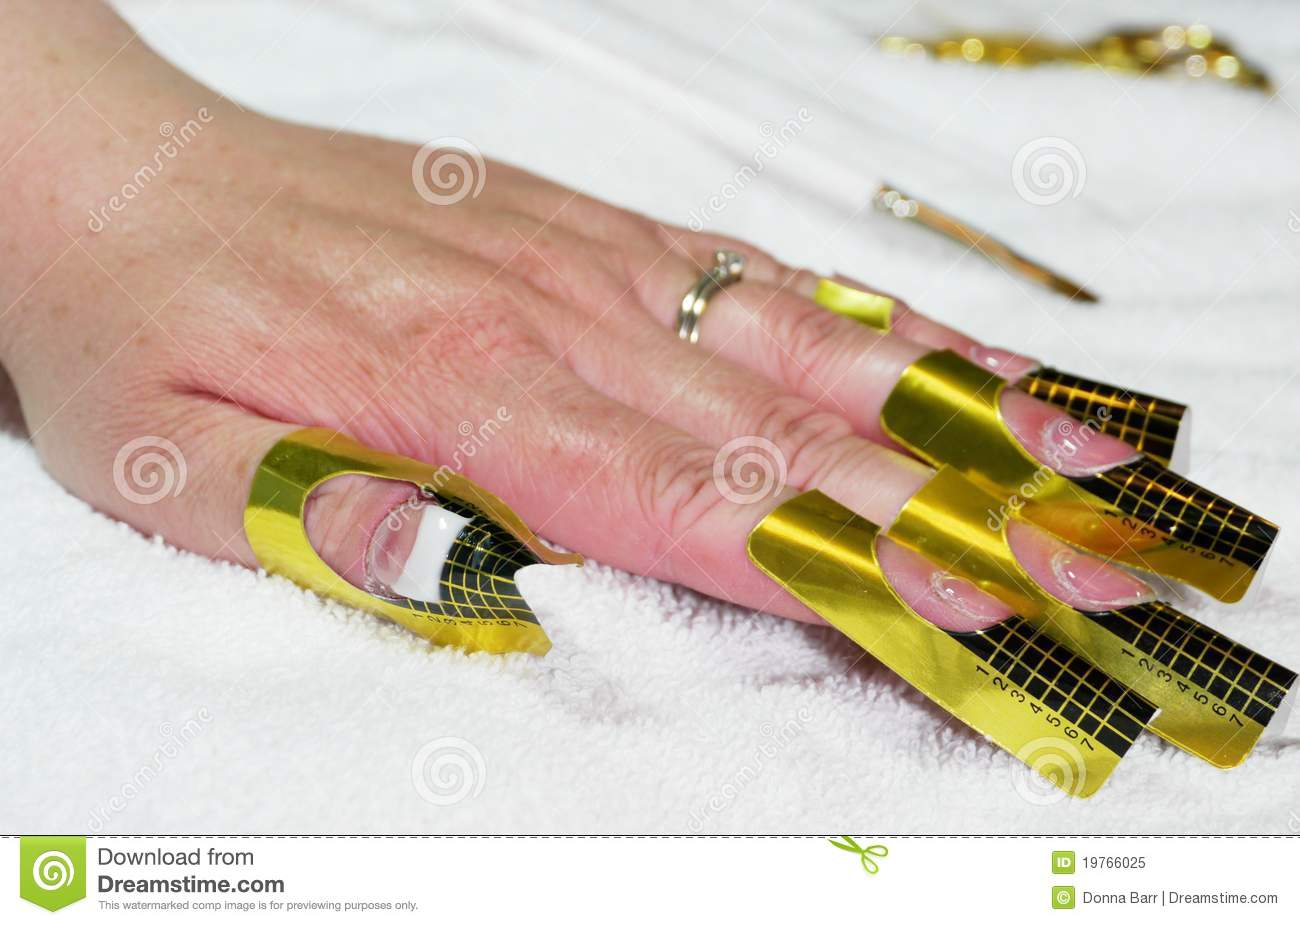 Hand on a white towel prepared for gel nail application.